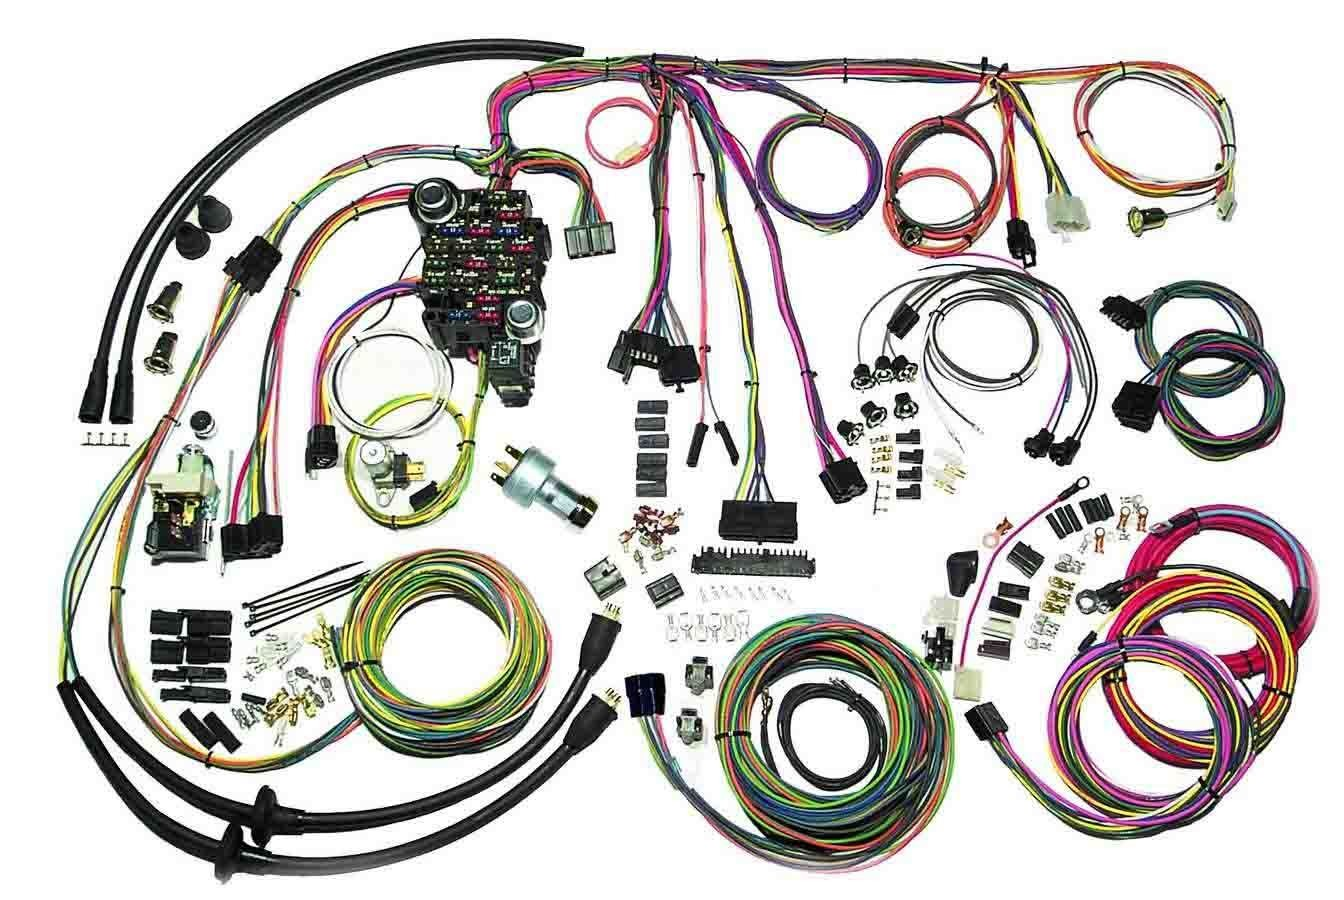 American Autowire 500434 Car Wiring Harness, Classic Update, Complete, Chevy Fullsize Car 1957, Kit